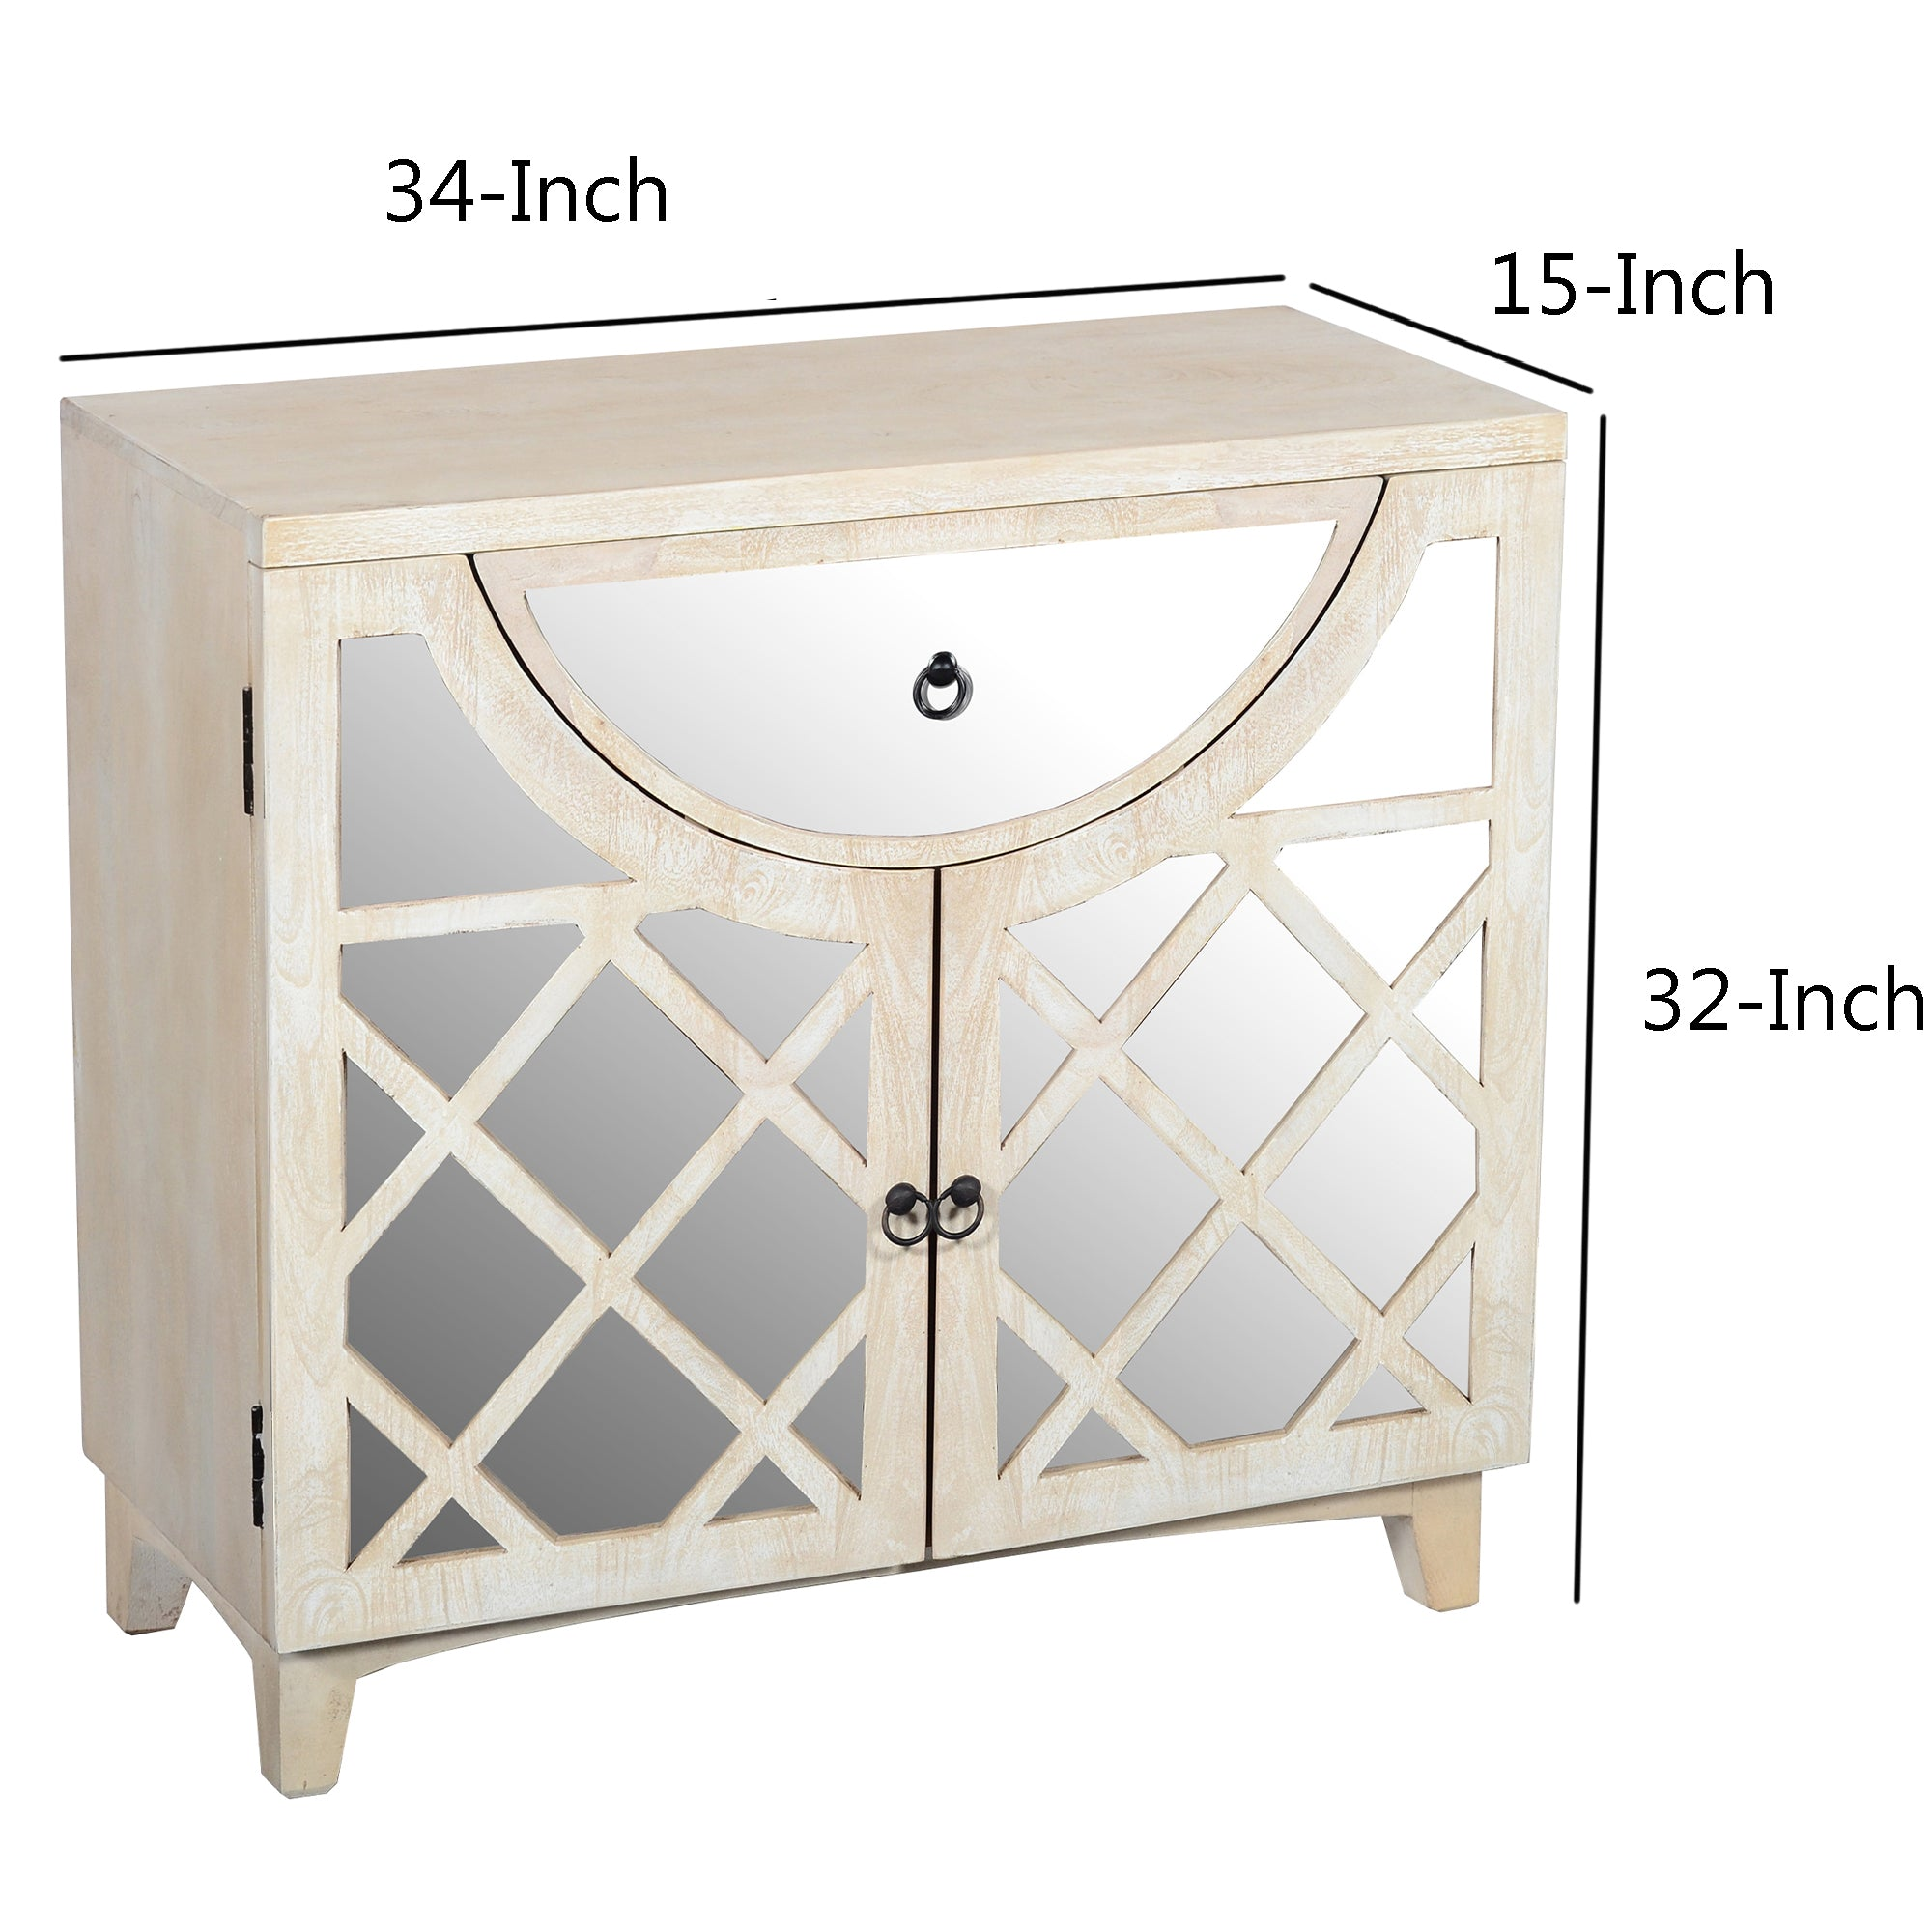 Urban Port UPT-195275 Mango Wood Cabinet with Mirrored Look Beige